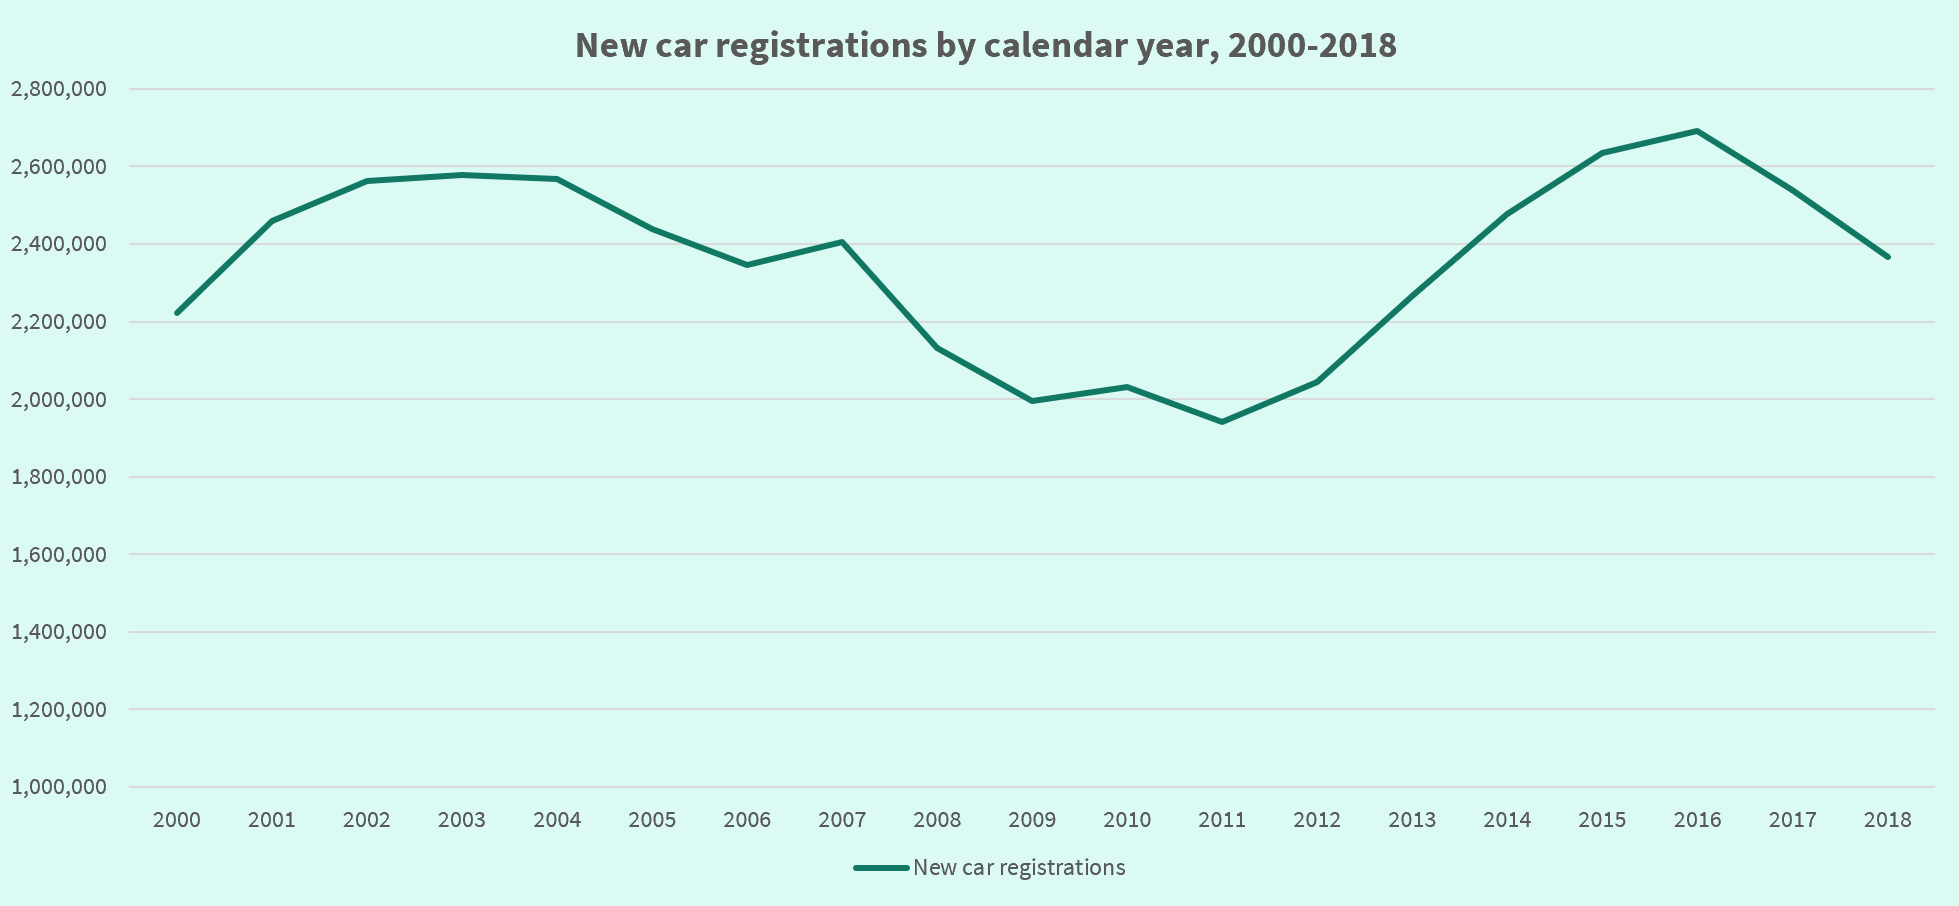 Graph showing new car registrations before, during and after financial crisis, 2000-2019